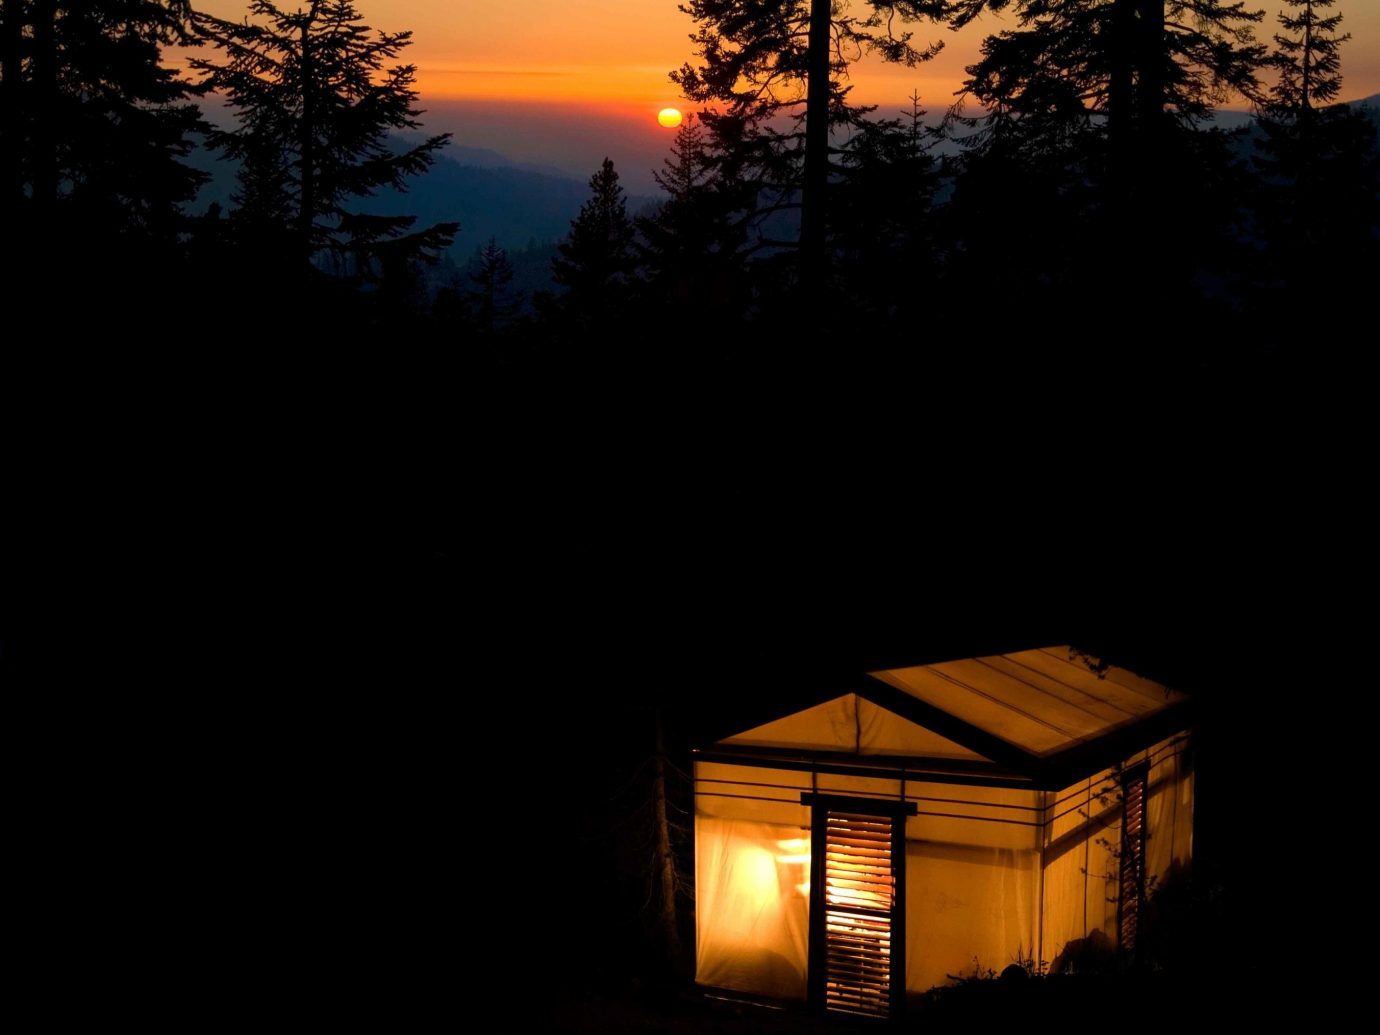 Glamping Outdoors + Adventure Trip Ideas tree outdoor sky Sunset night atmosphere light sunrise evening morning darkness dawn Sun sunlight dusk reflection dark setting clouds